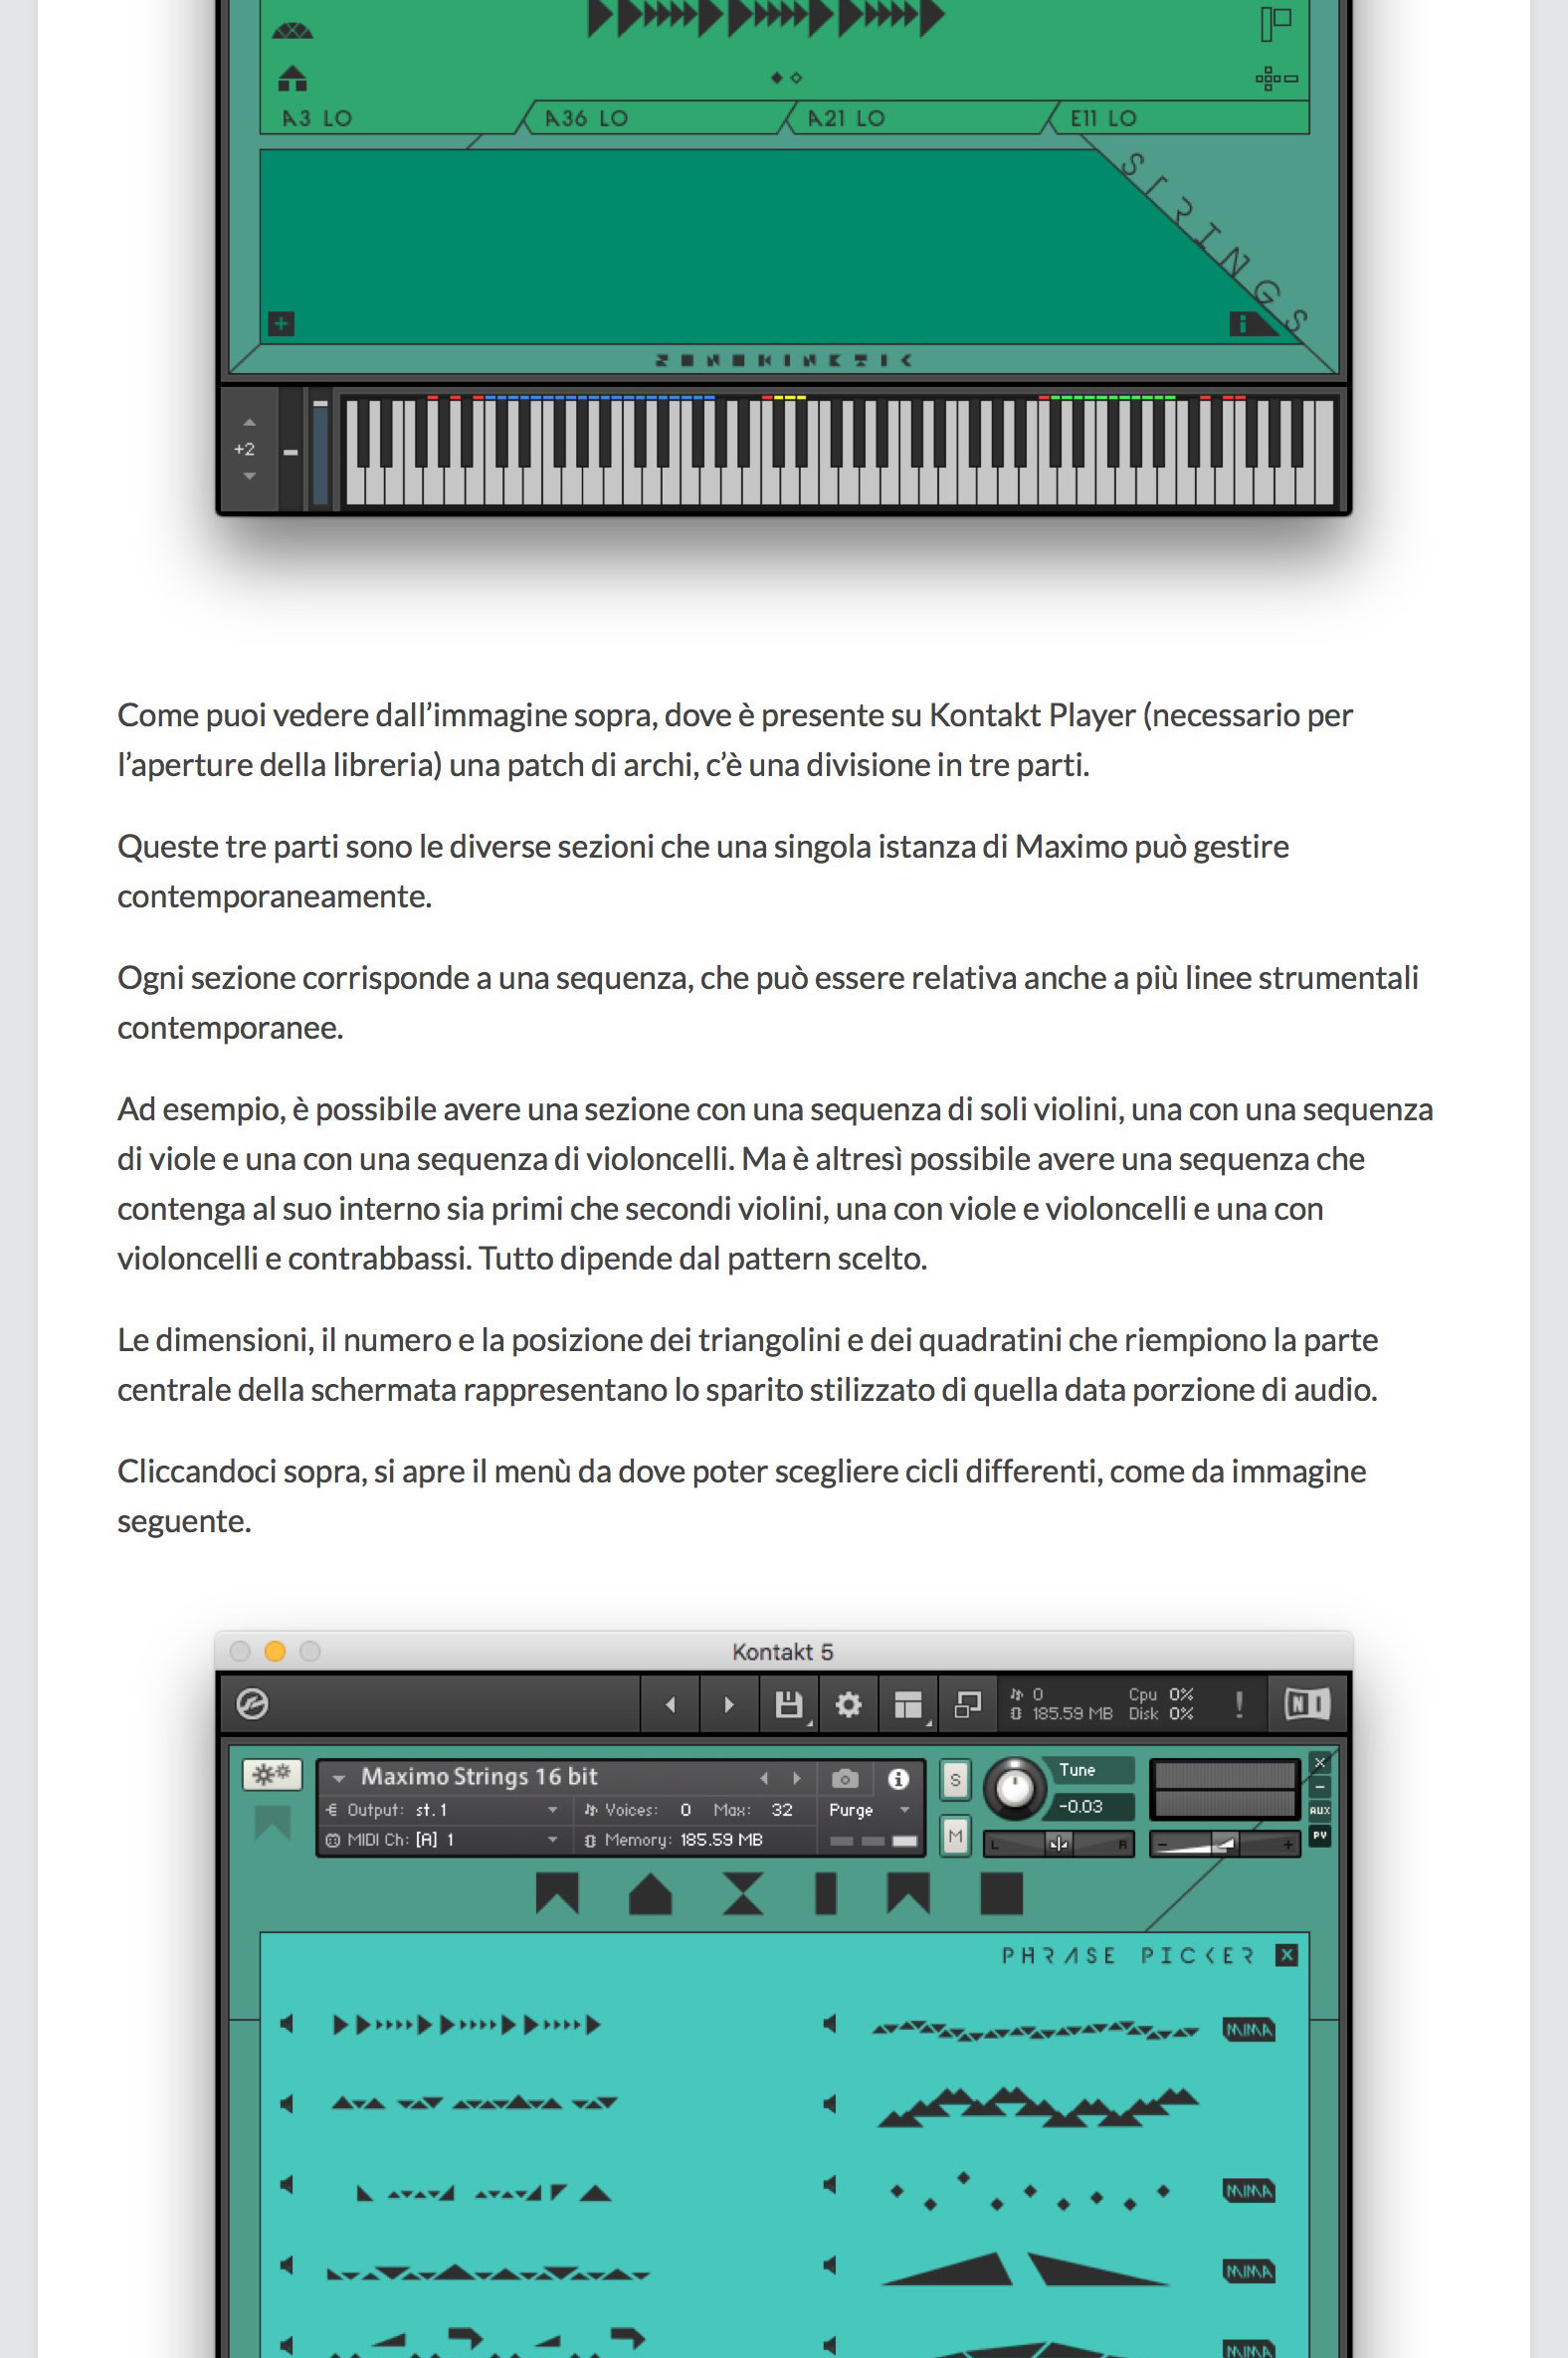 Maximo - Sonokinetic - Sample libraries and Virtual Instruments